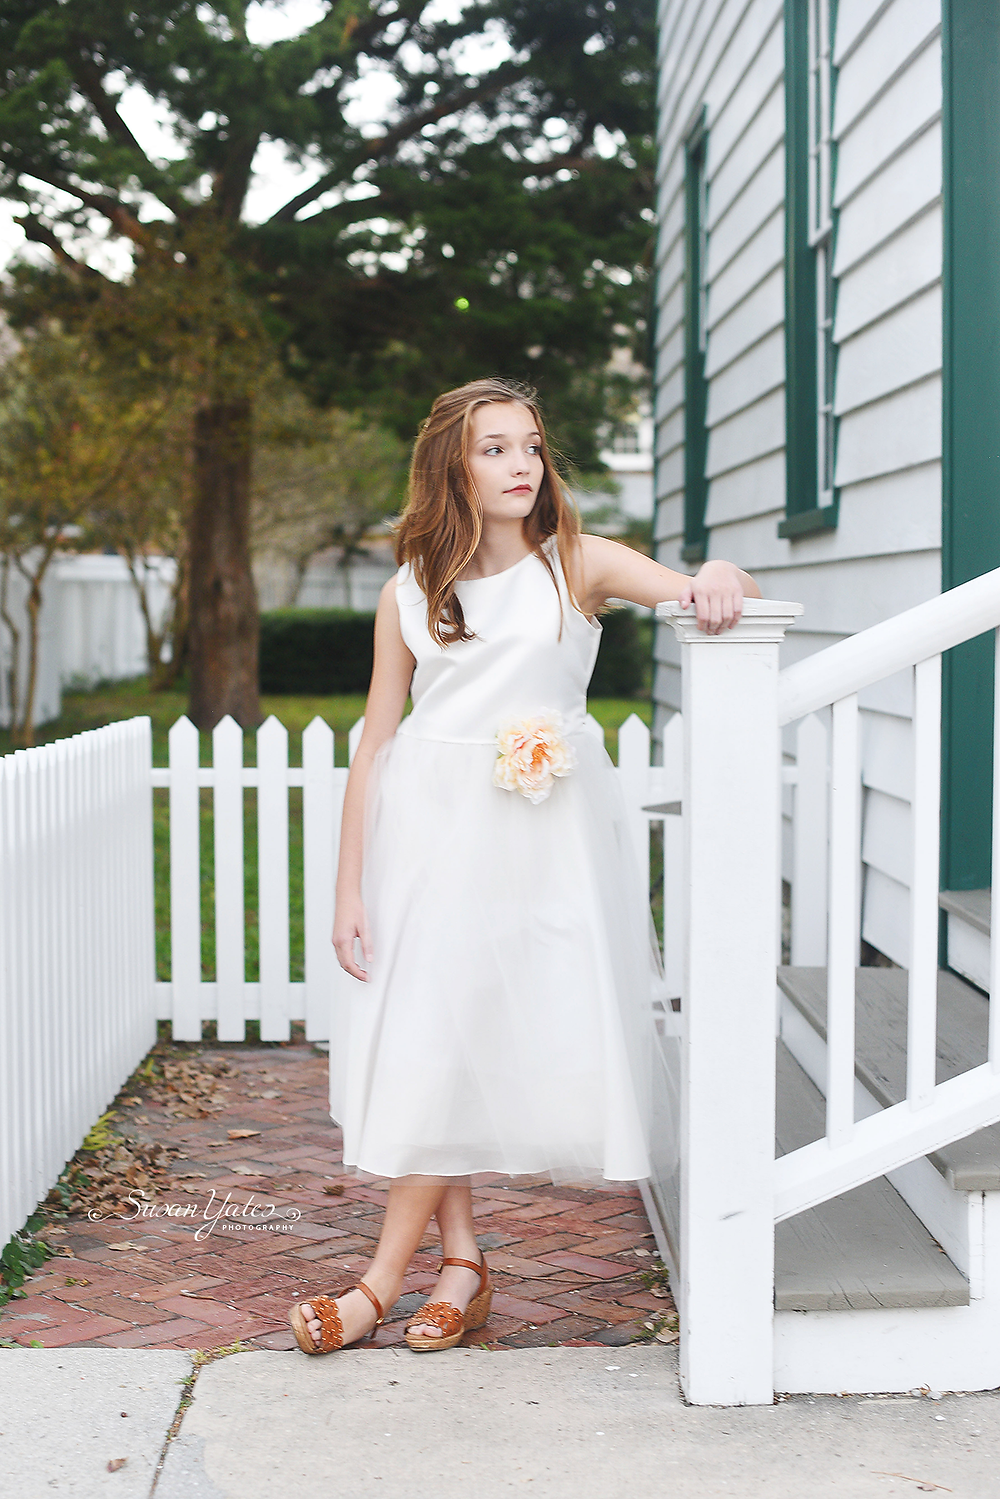 Beaufort NC Portrait Photographer